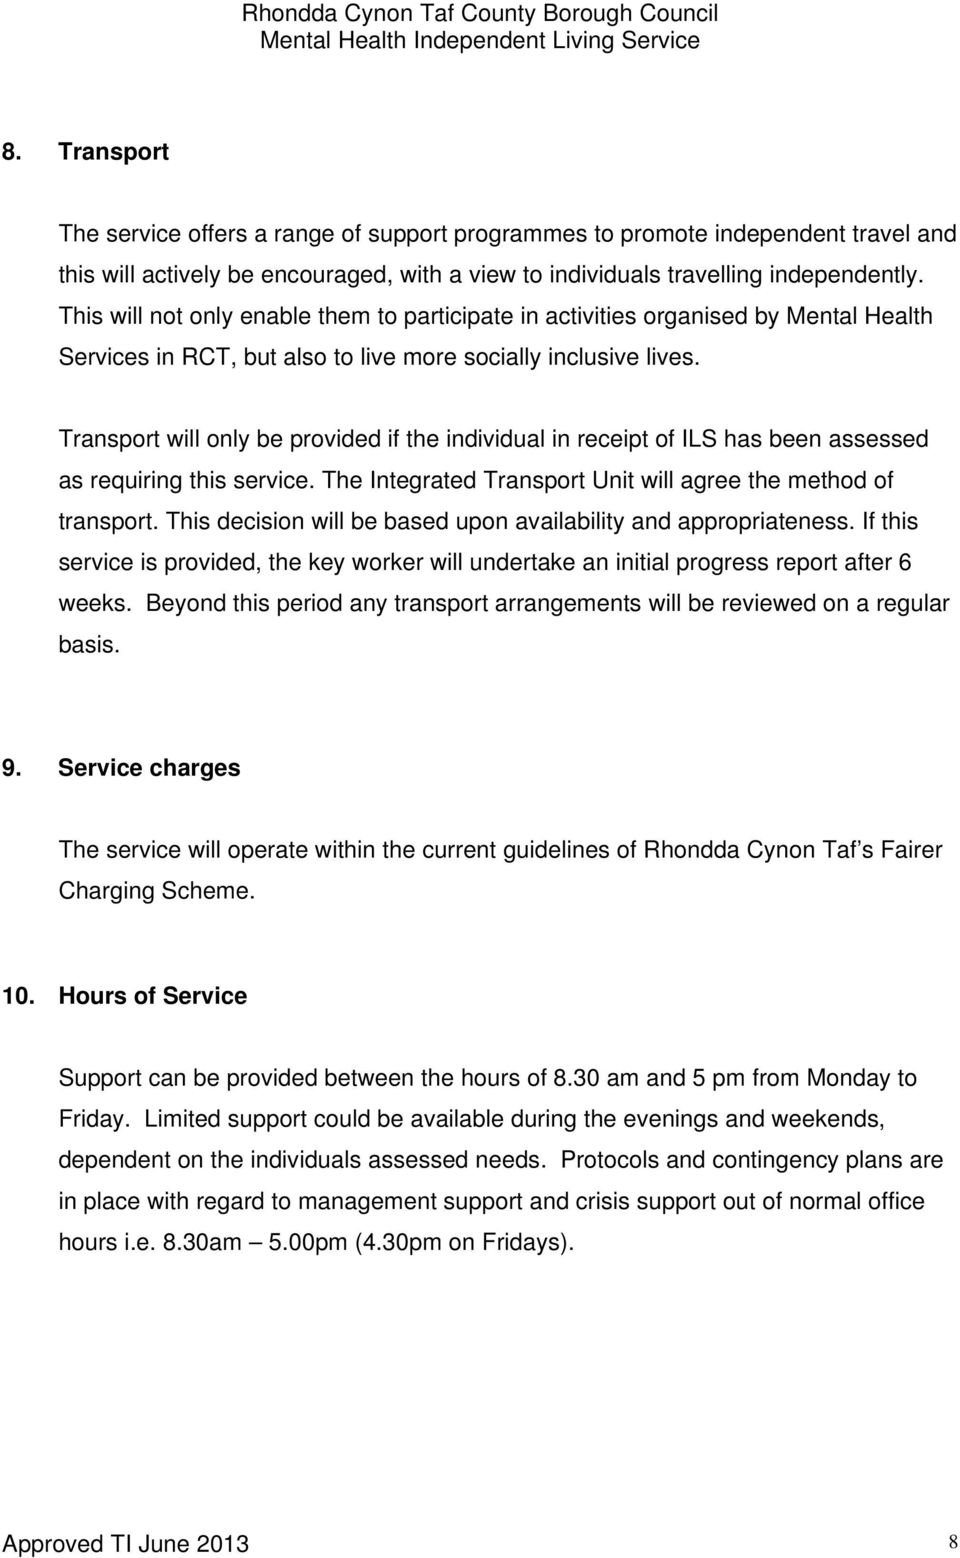 Transport will only be provided if the individual in receipt of ILS has been assessed as requiring this service. The Integrated Transport Unit will agree the method of transport.